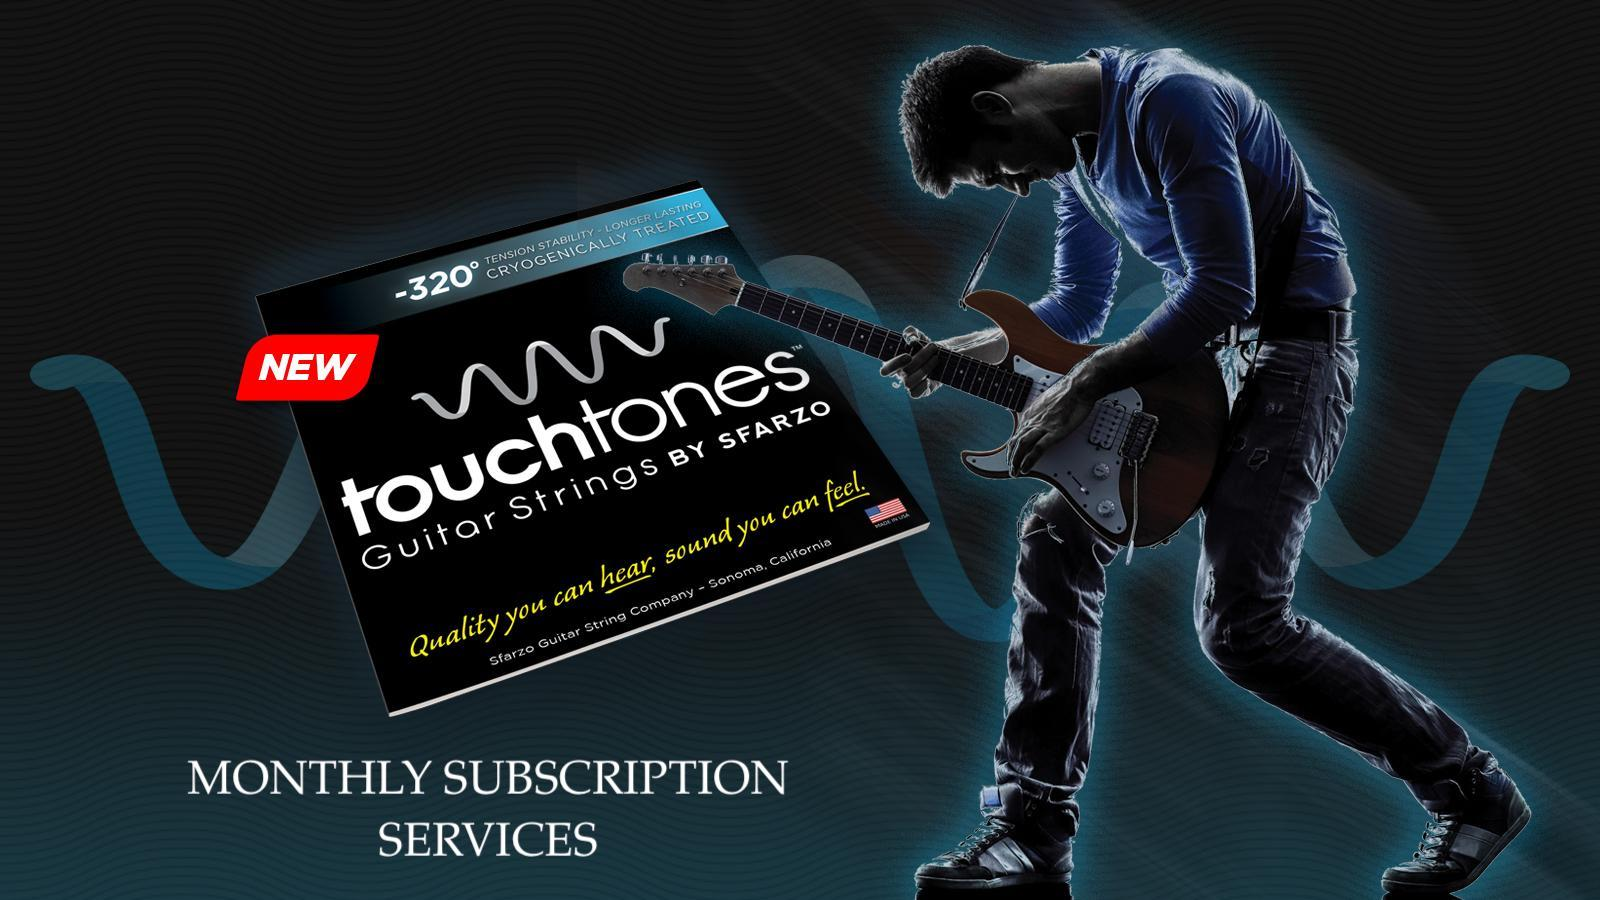 touchtones-subscription.jpg